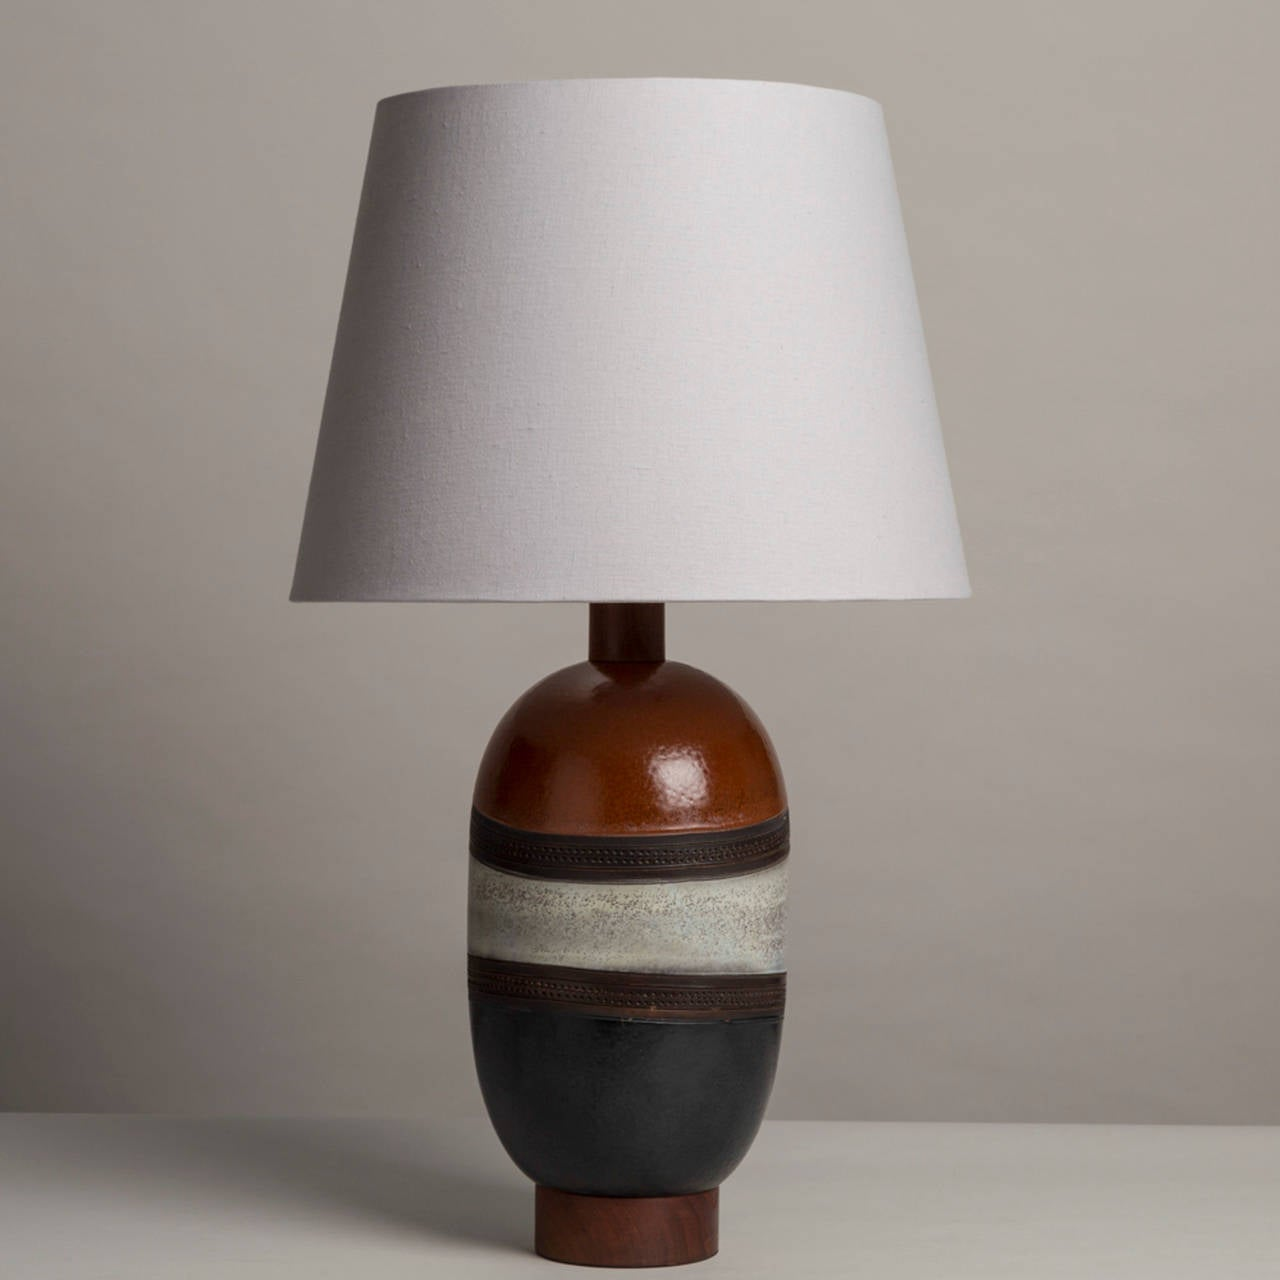 Single Italian glazed ceramic table lamp with brown, off white and black sectioned off with deep brown stimpled banding.  The lamp is set on a wooden base and has been furnished with an off white linen shade. 1970s.